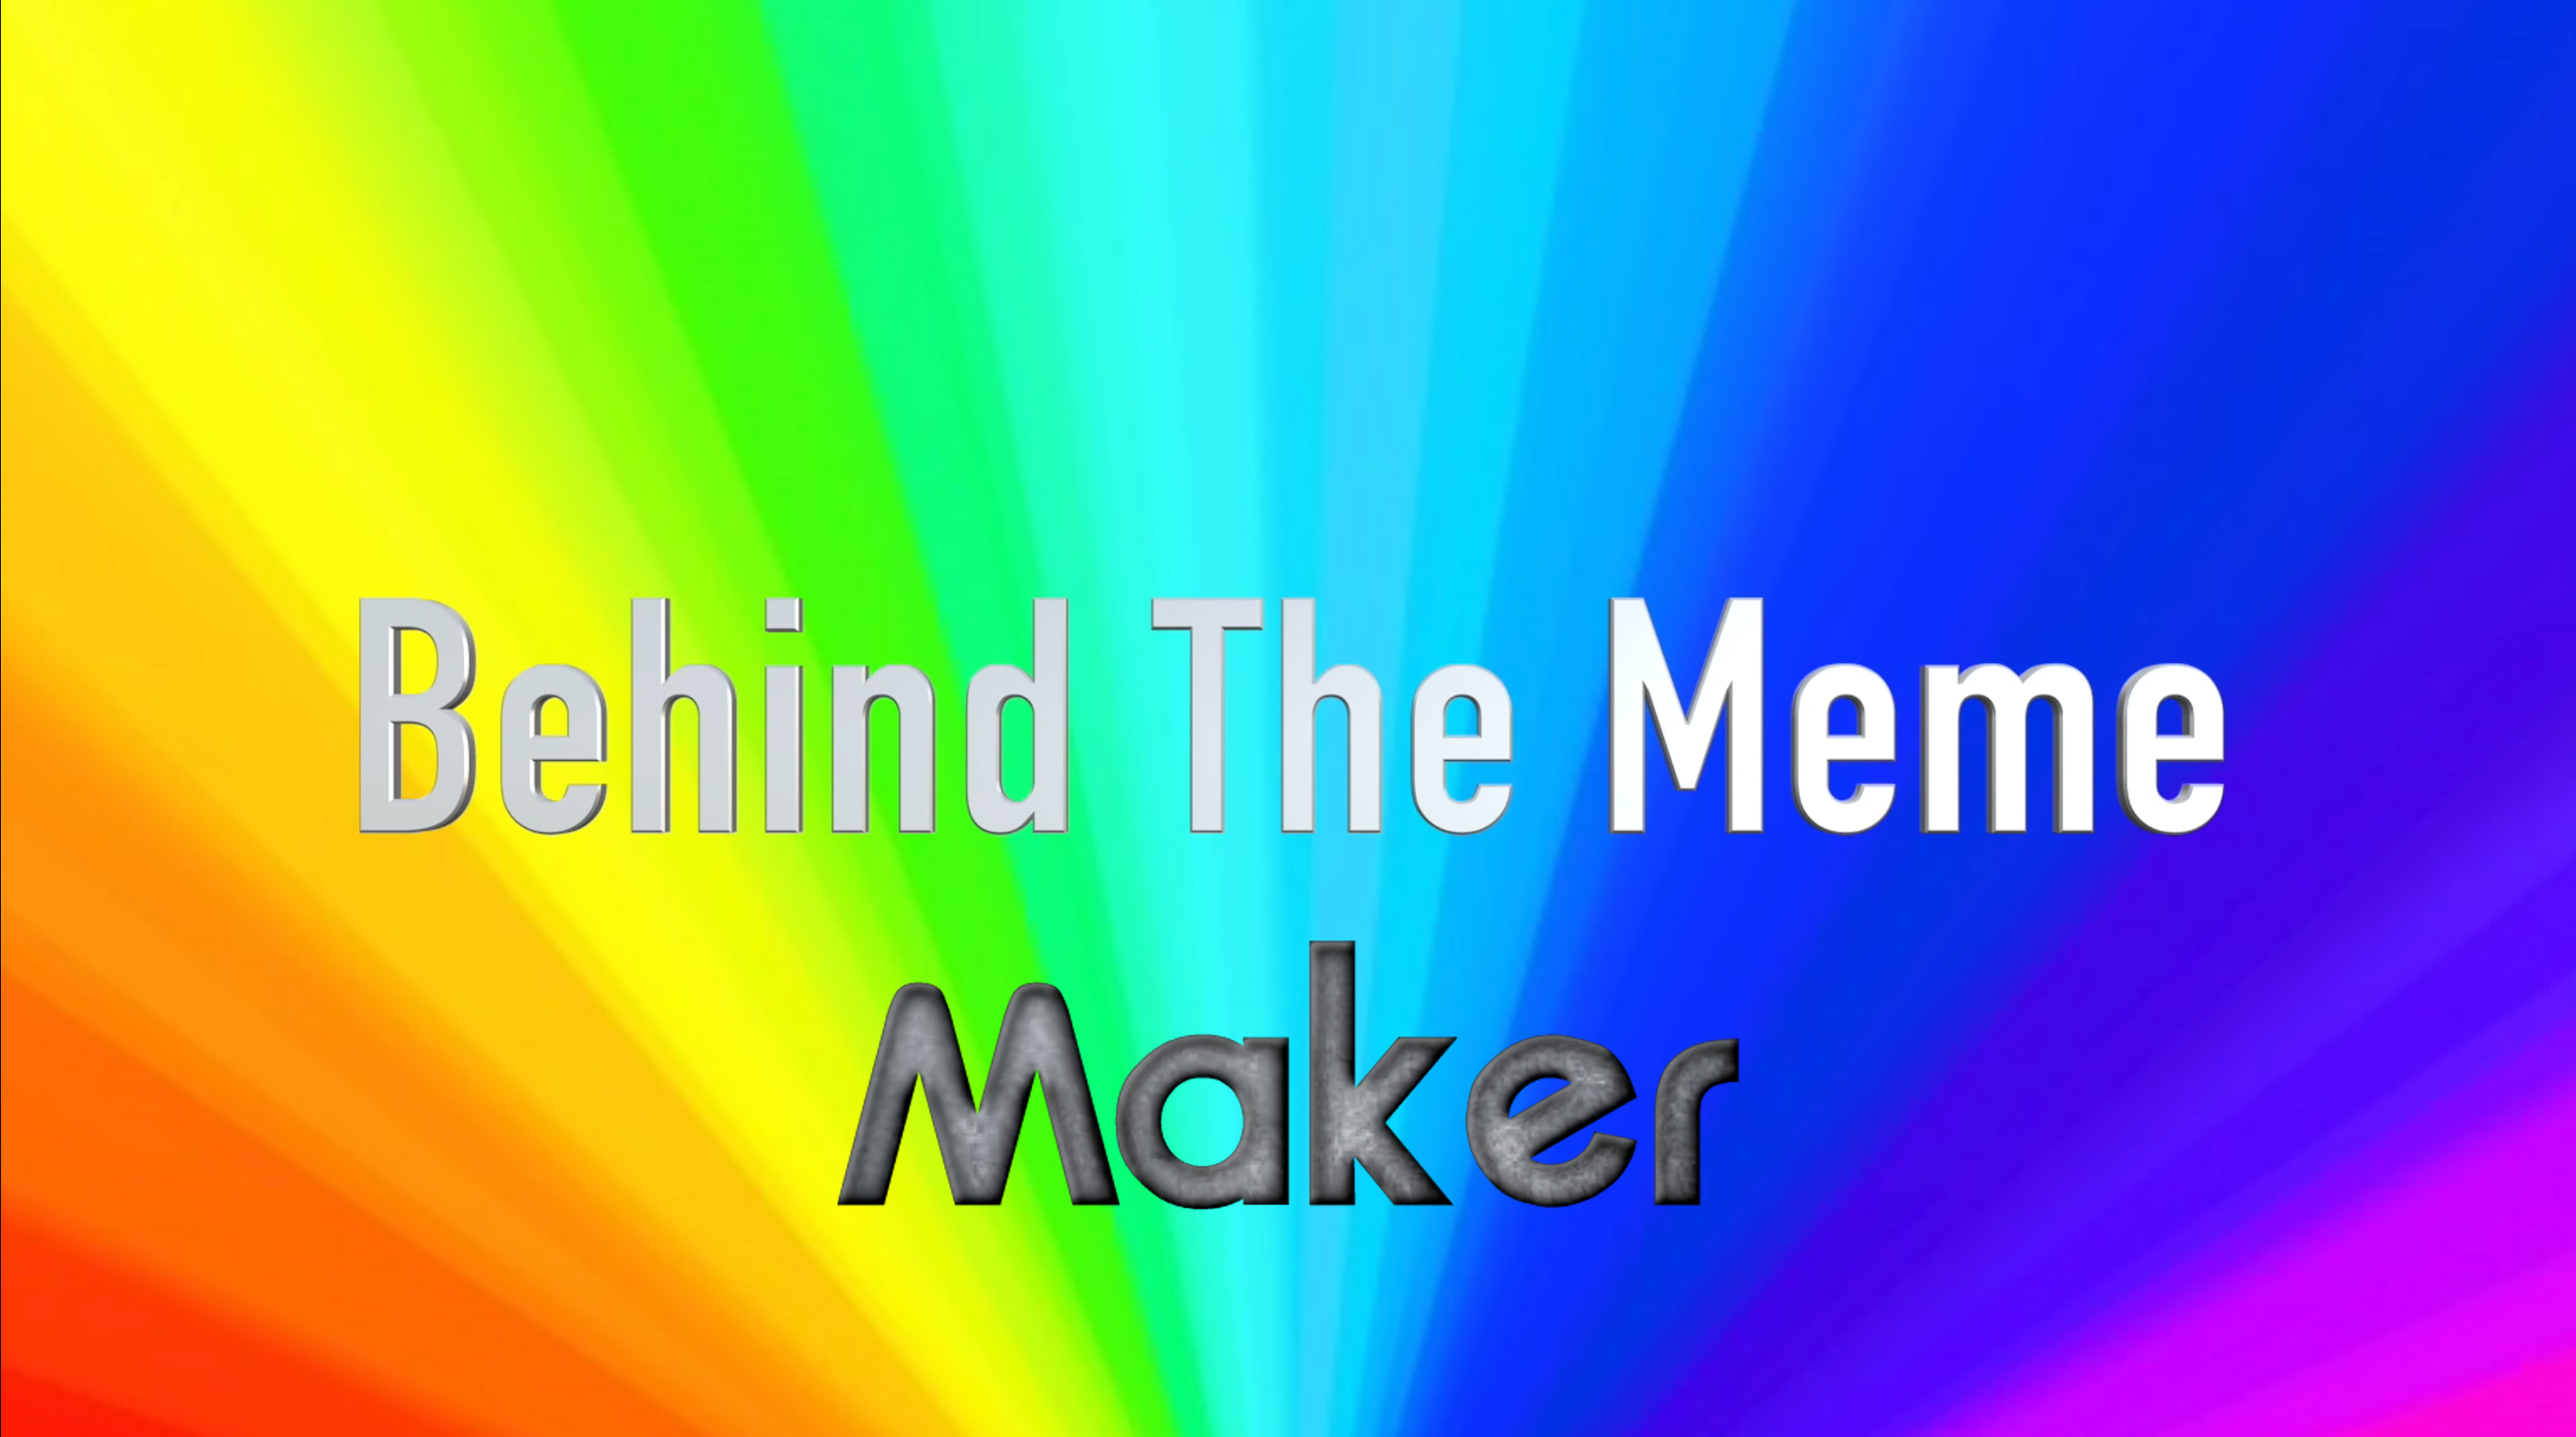 Behind The Meme Maker